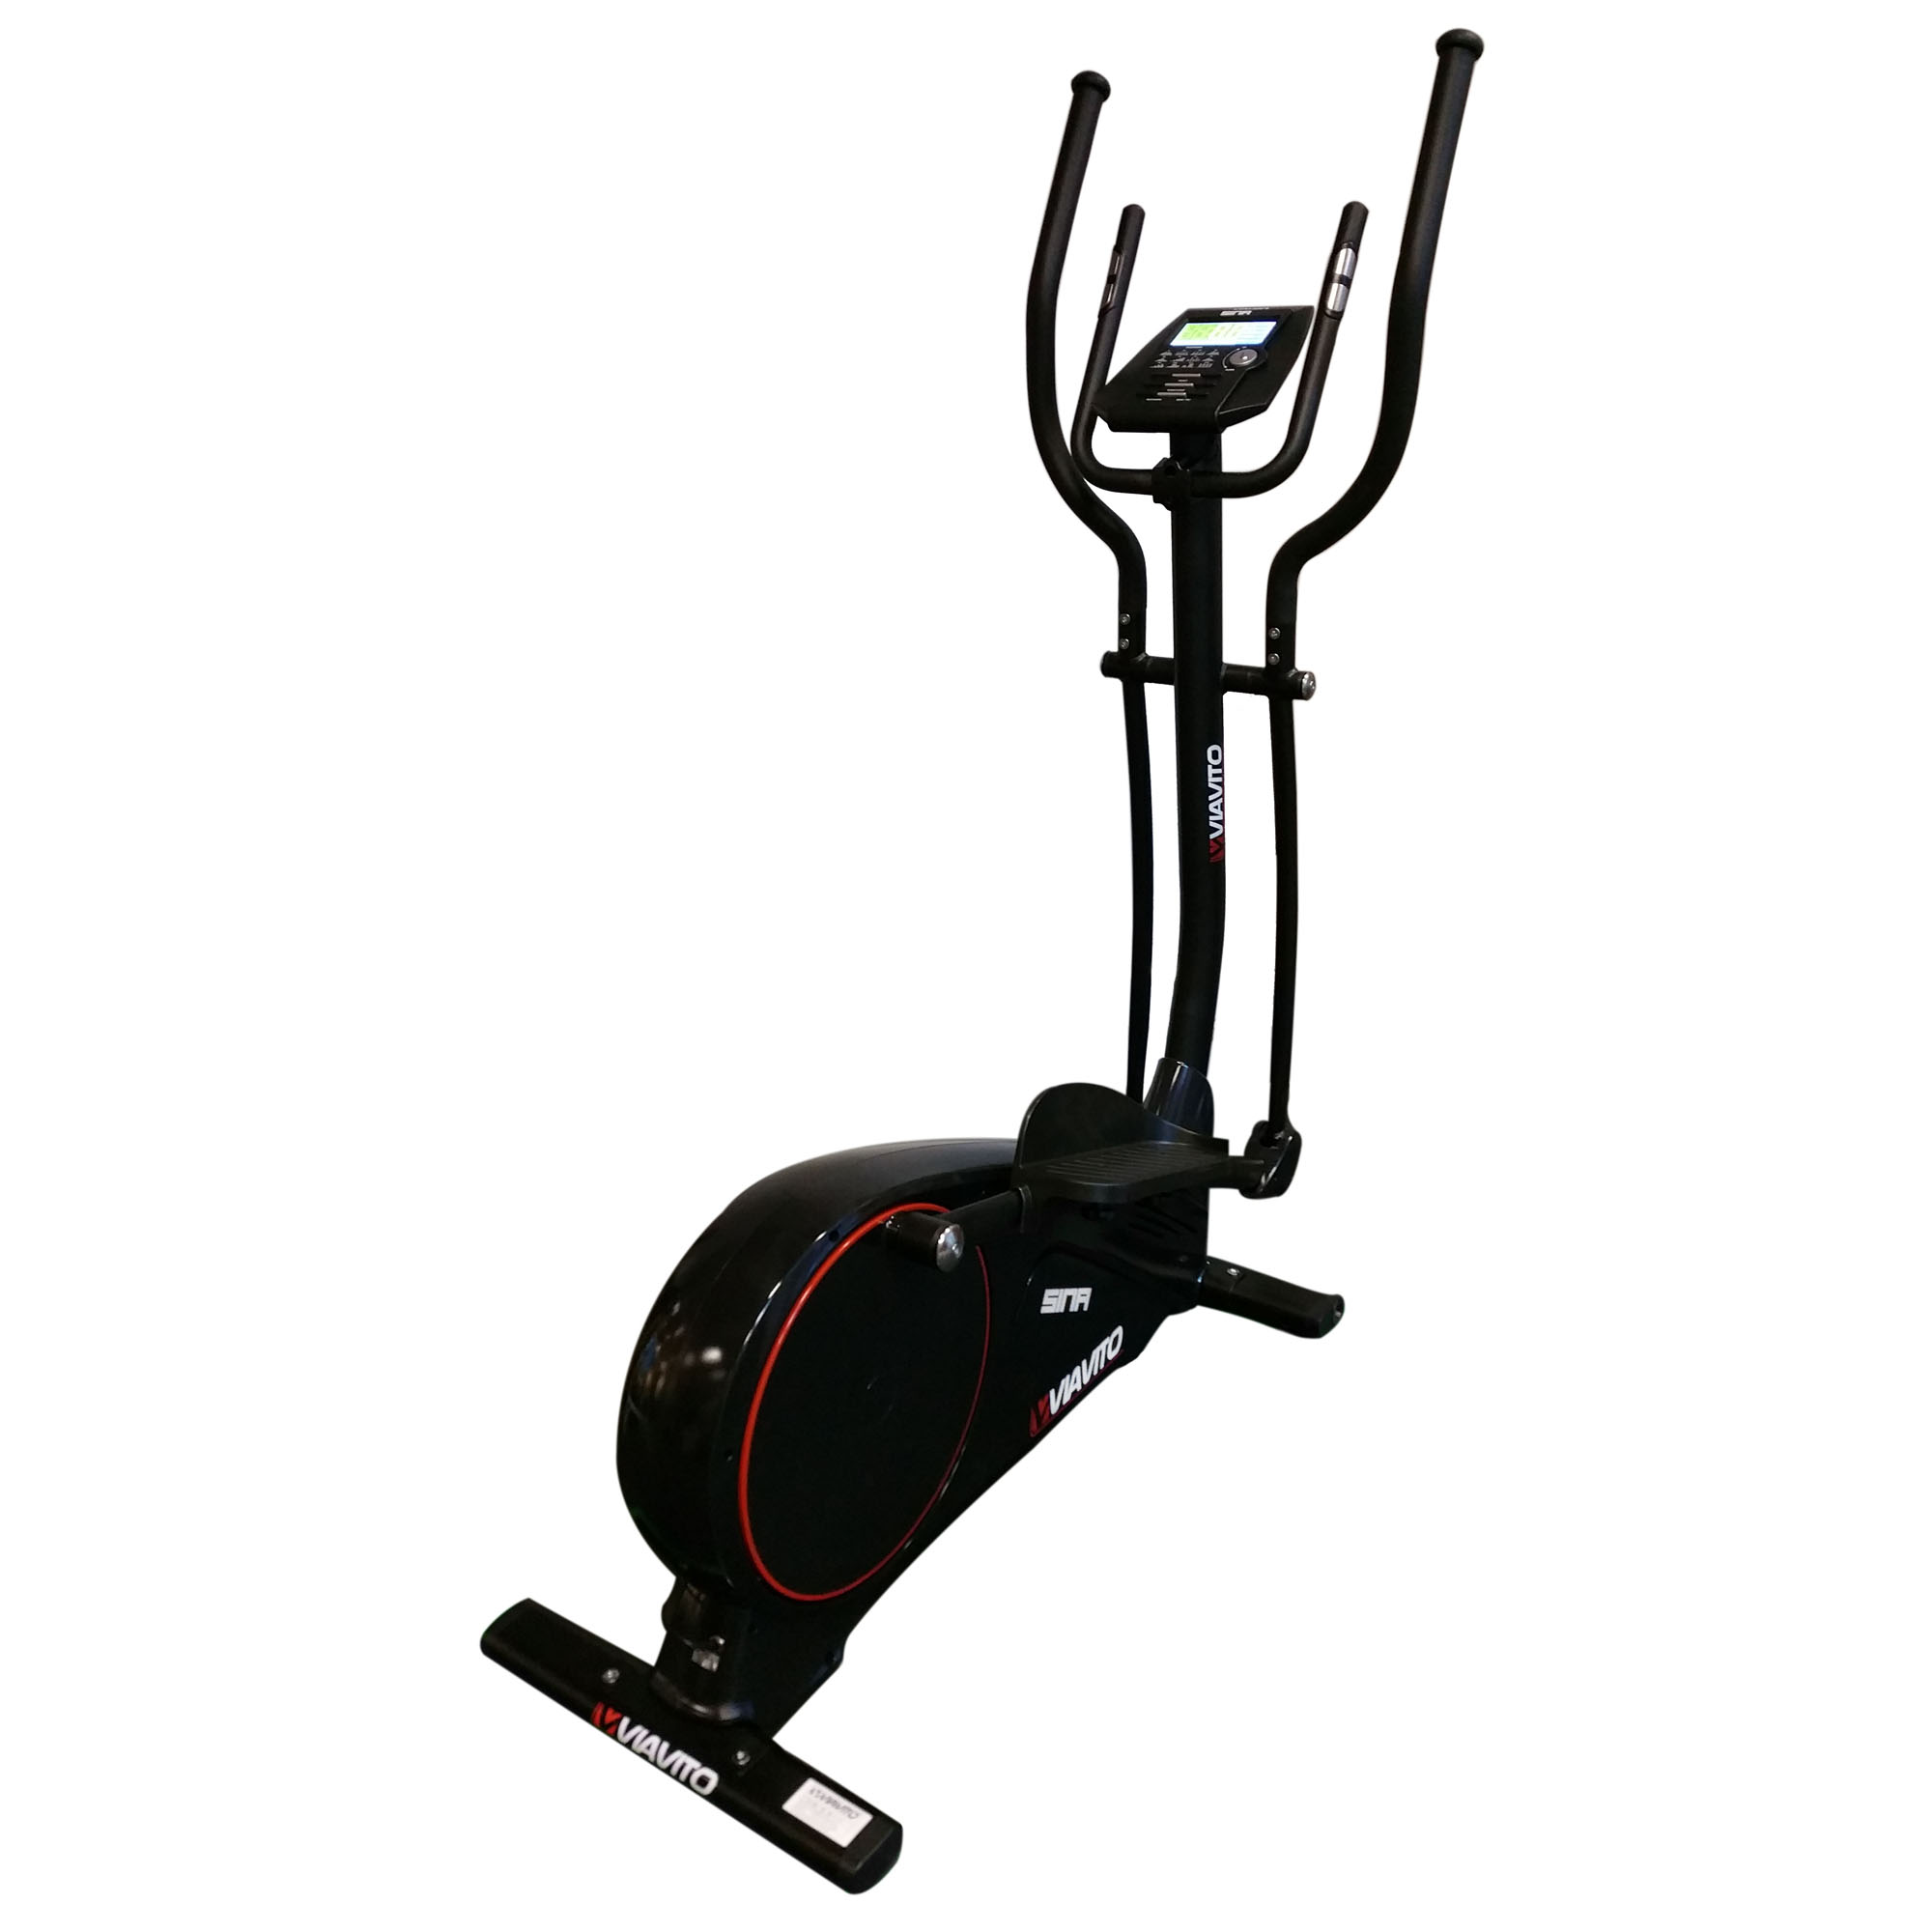 Buy Cross Trainers For Under £300Elliptical Cross Trainers